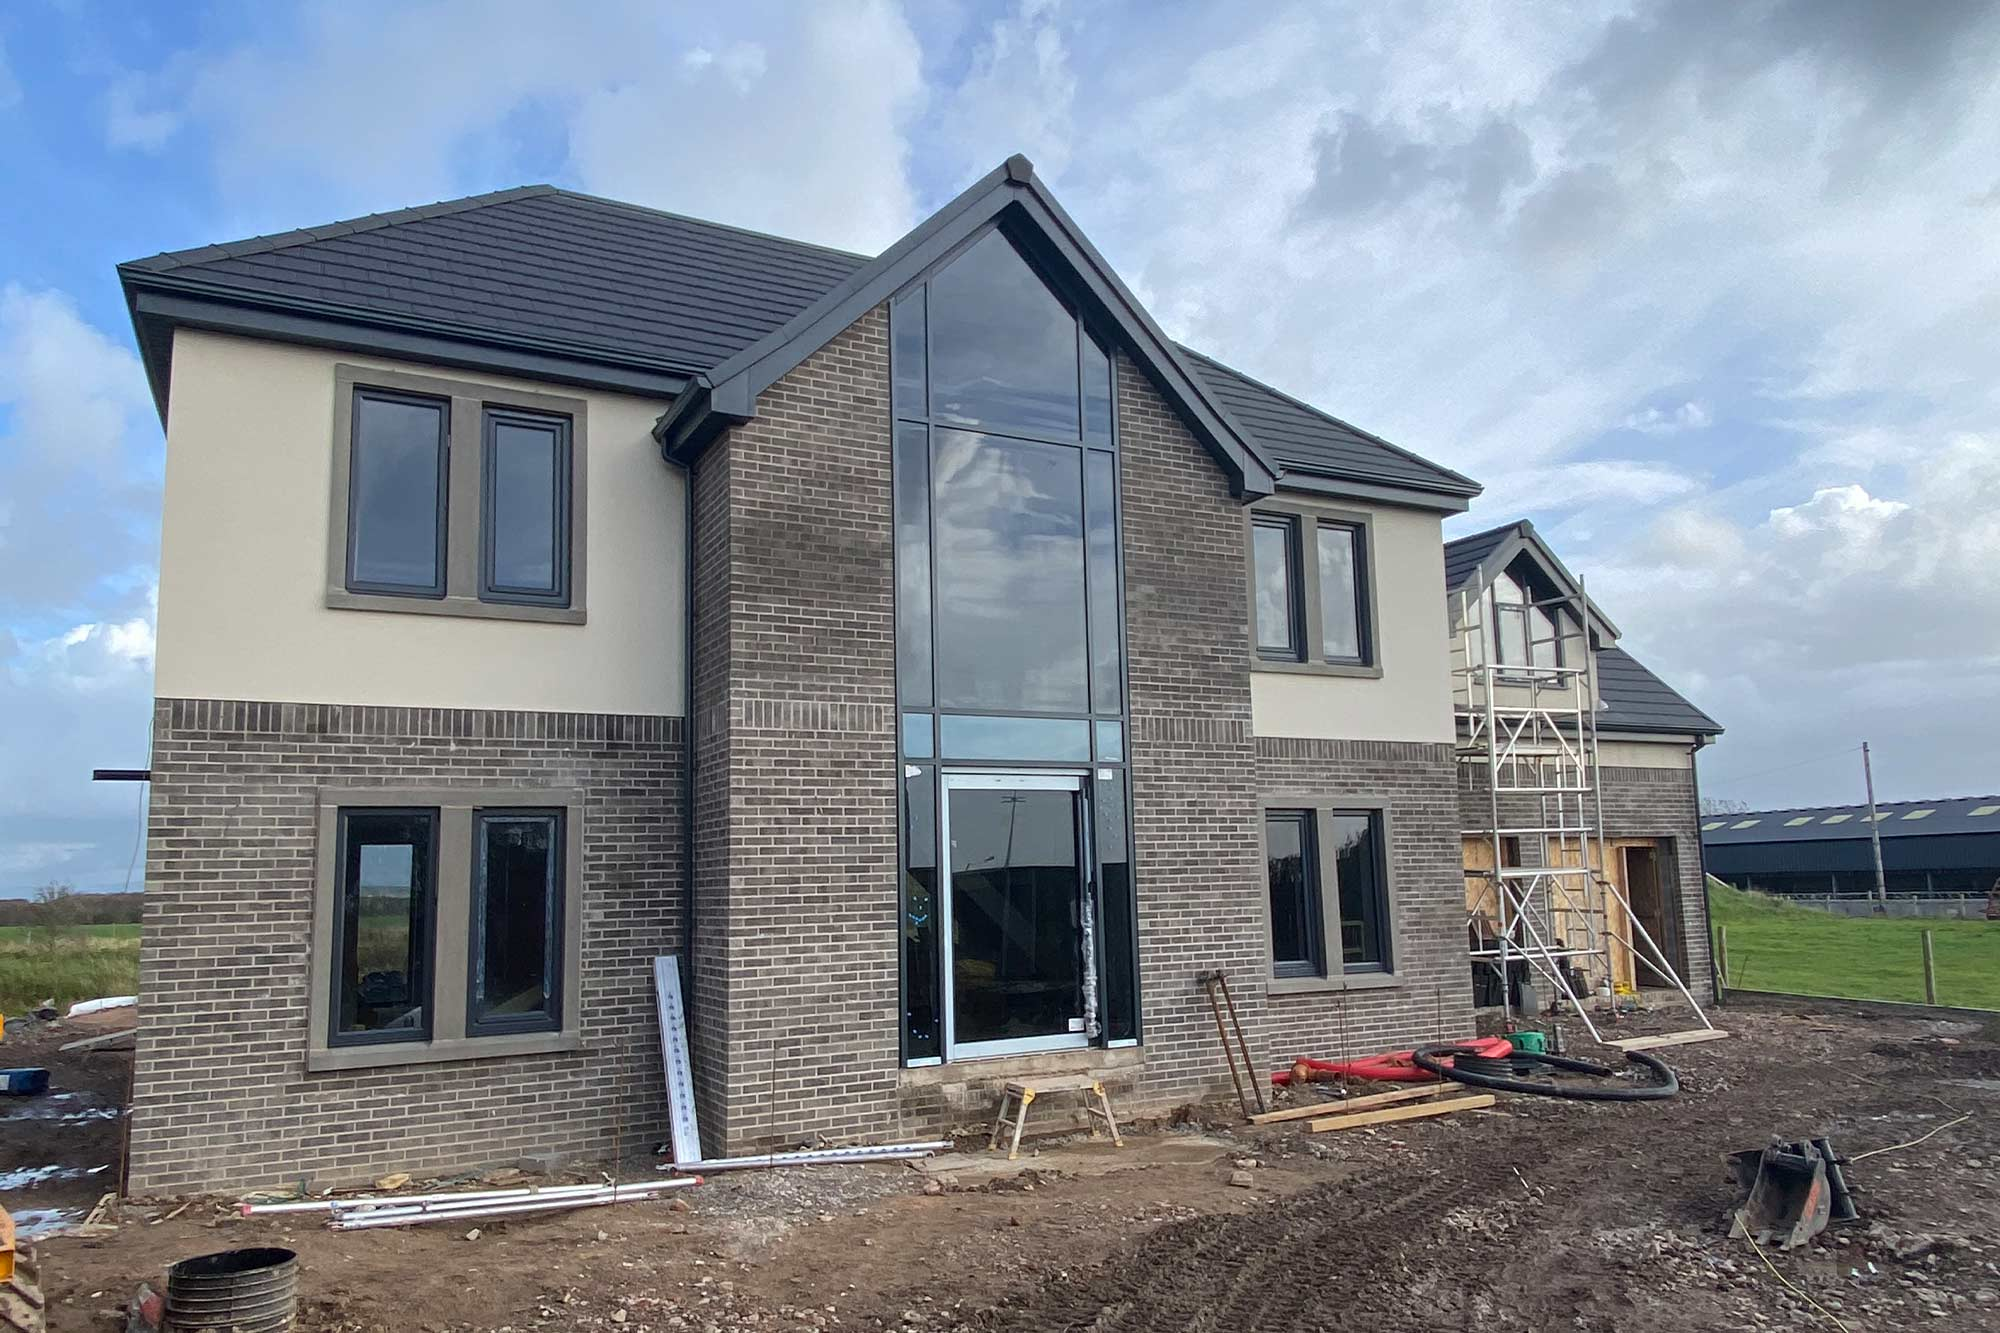 Bespoke, contemporary detached home with grand glazed feature entrance staircase architectural design in Blackpool